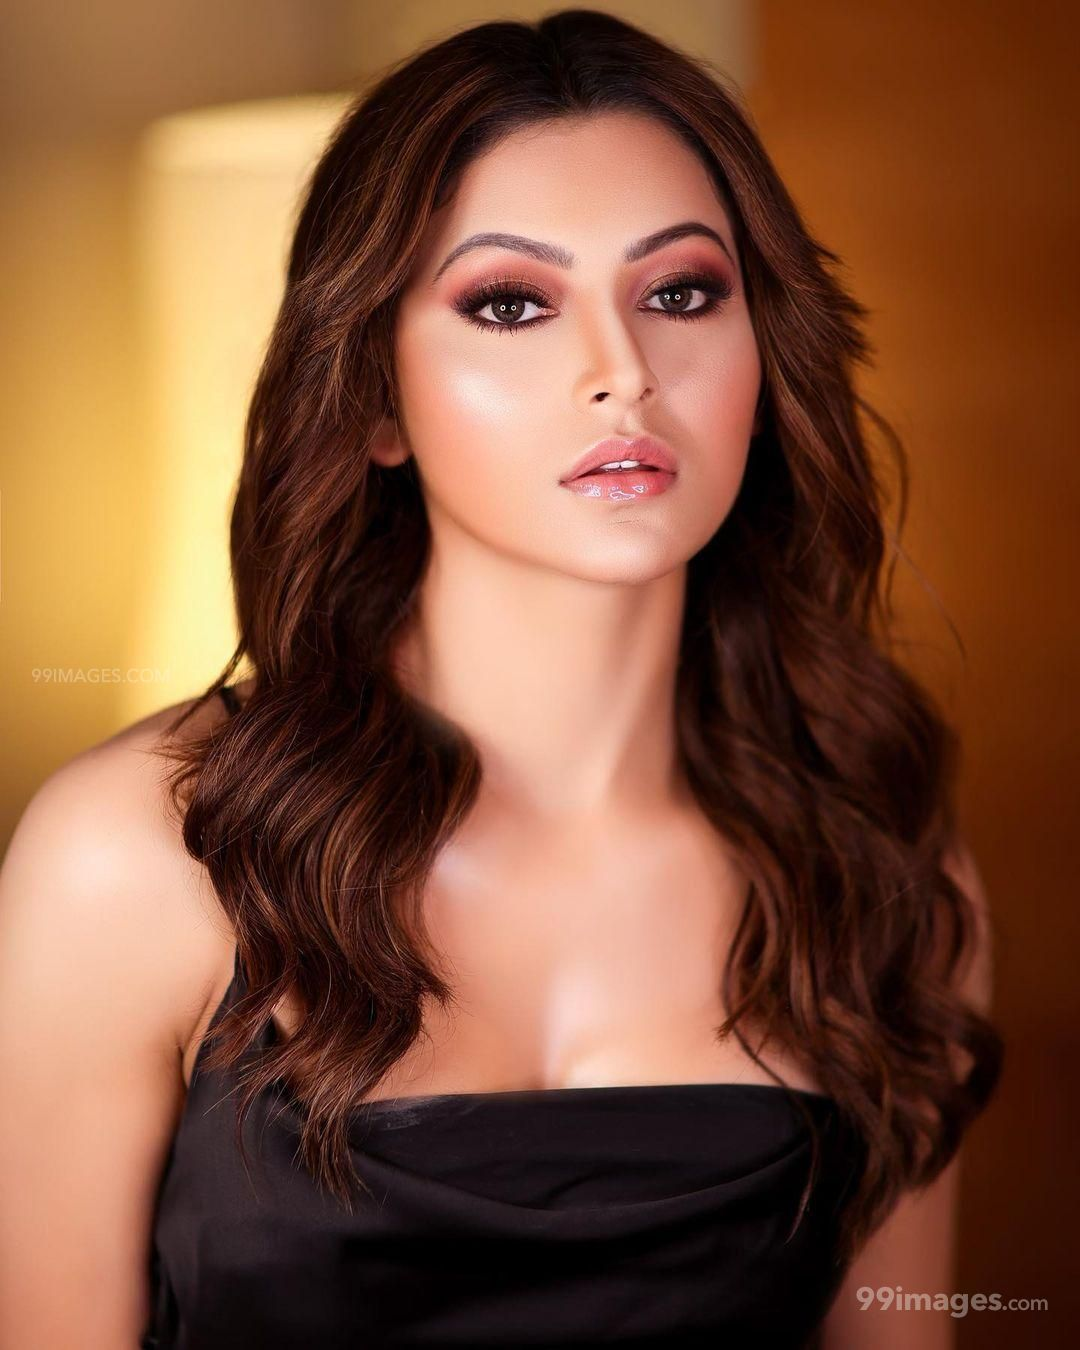 Urvashi Rautela Beautiful Photos & Mobile Wallpapers HD (Android/iPhone) (1080p) (631380) - Urvashi Rautela